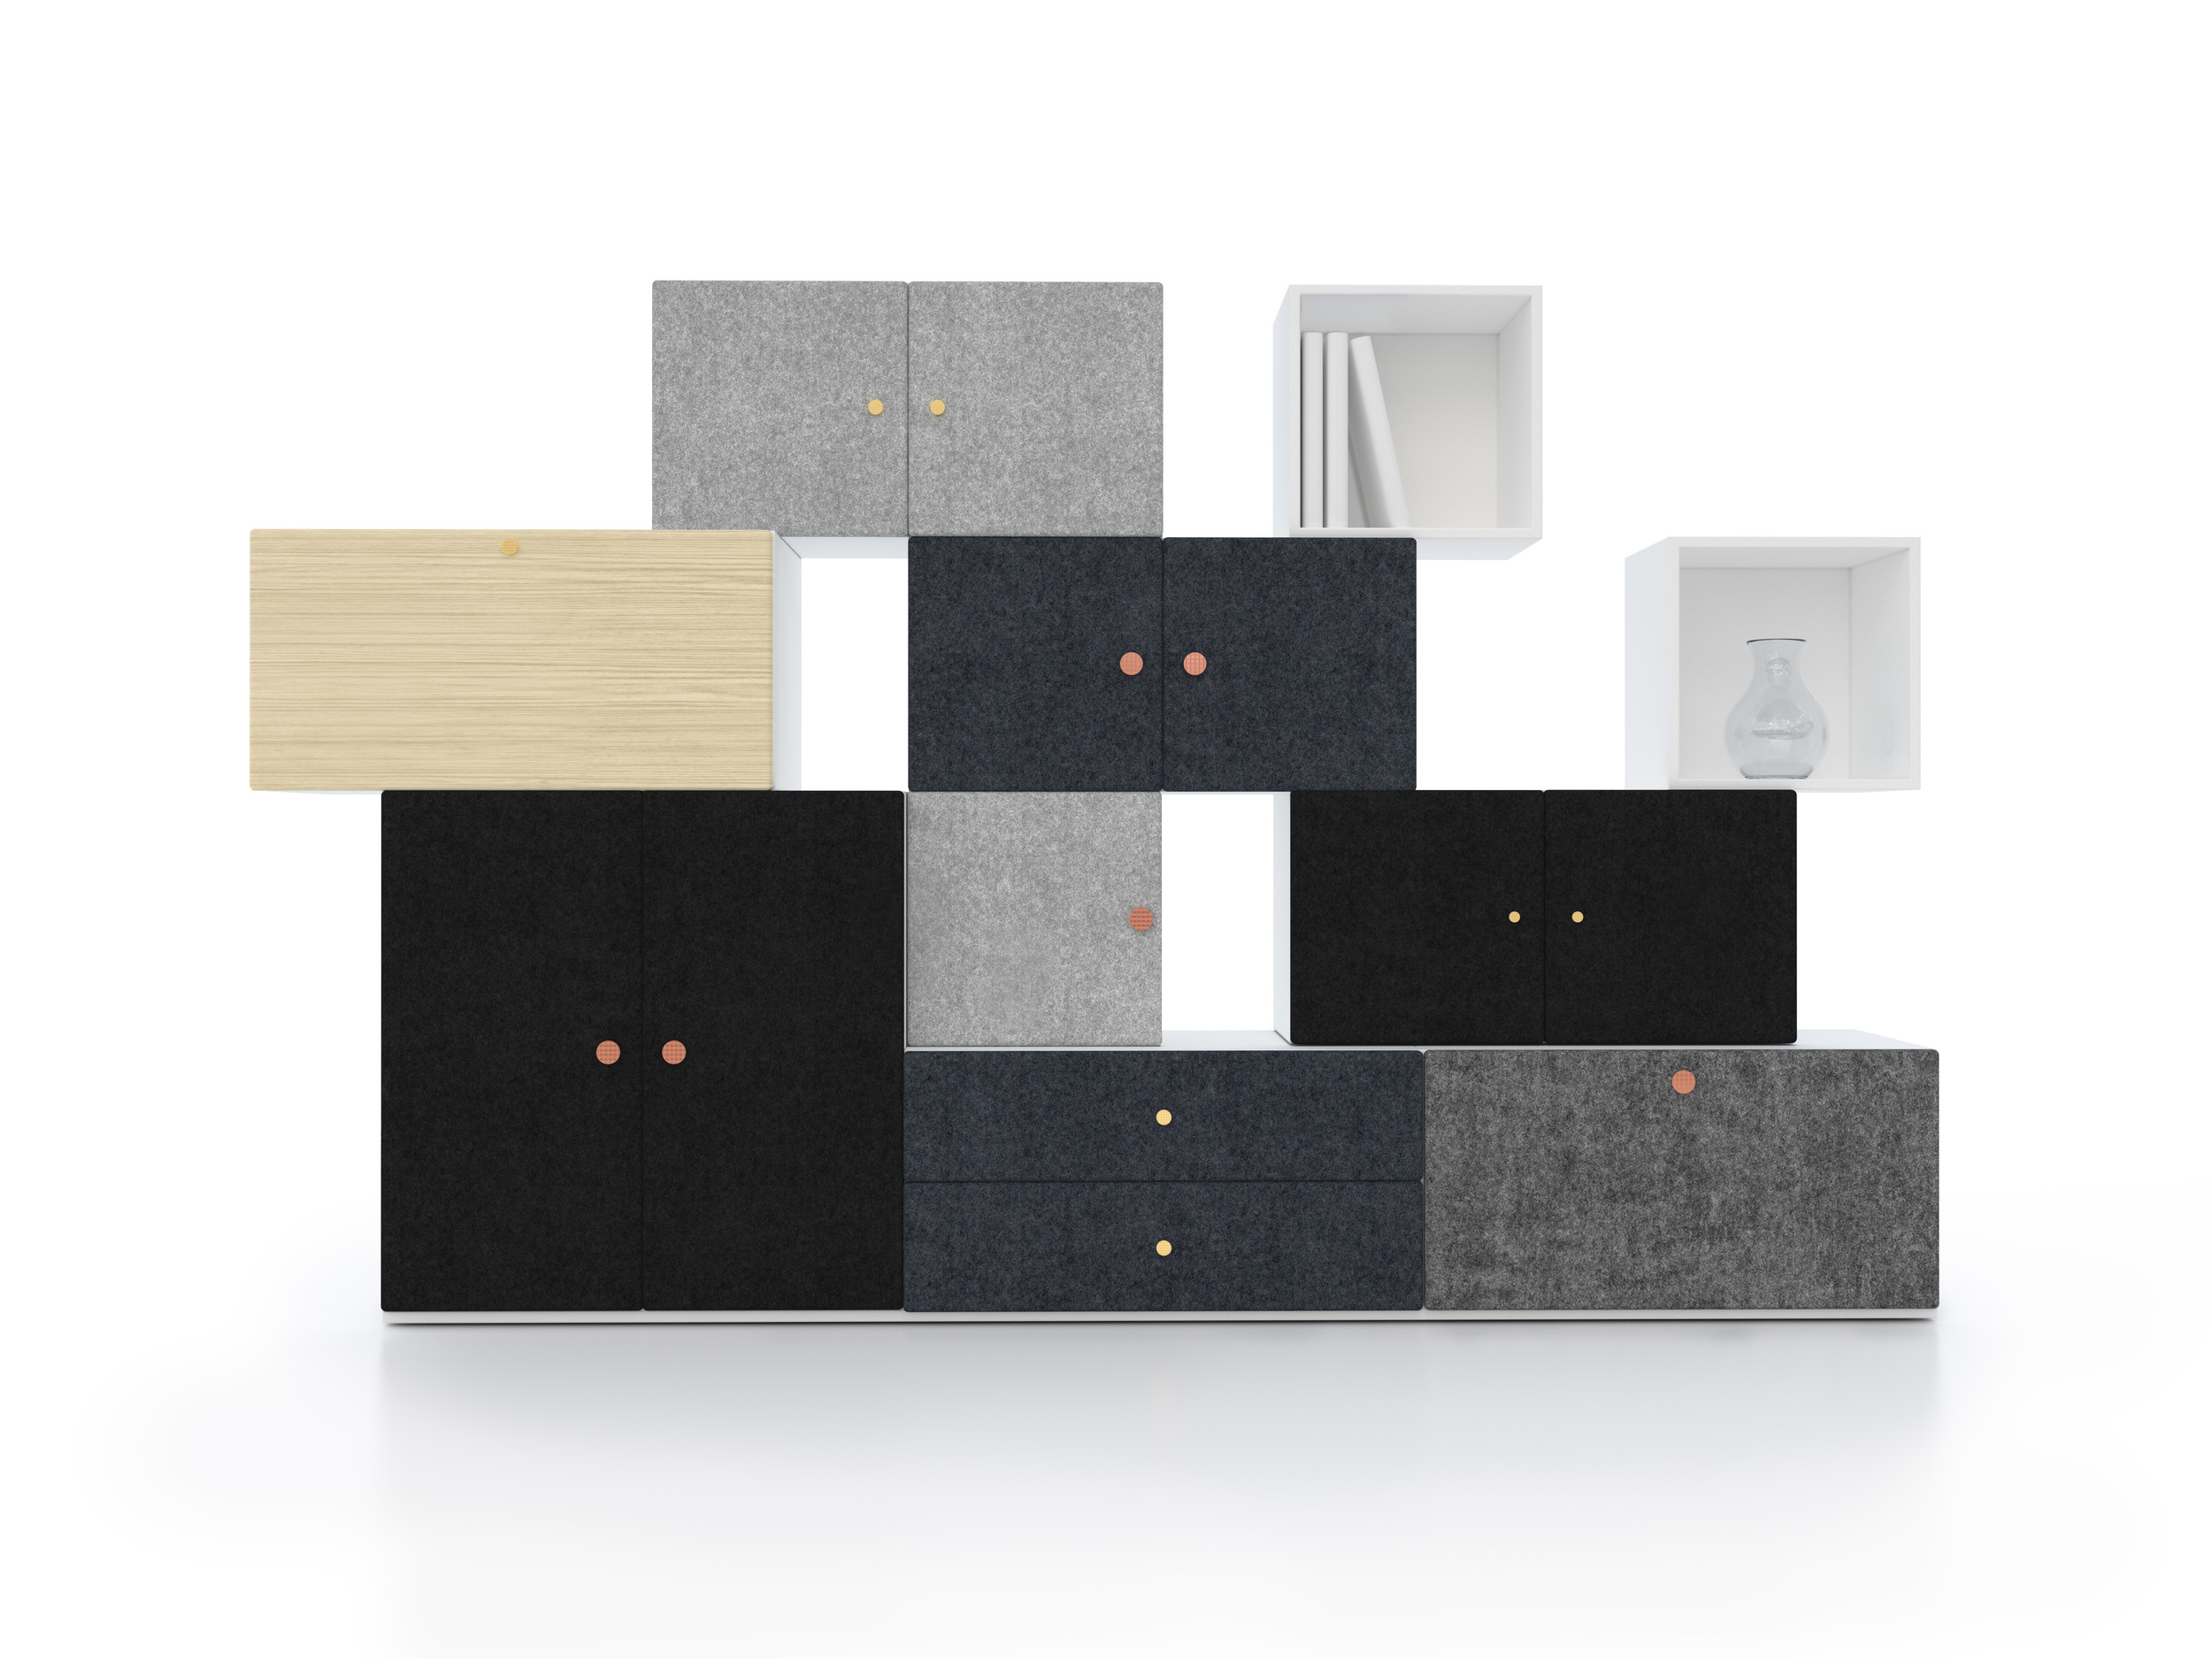 Swedish trio, Front, released 'Tetris', a stacking storage system for Swedish company Horreds that is made up of two units that can be positioned horizontally or vertically and specified with various front panels including felt as shown.